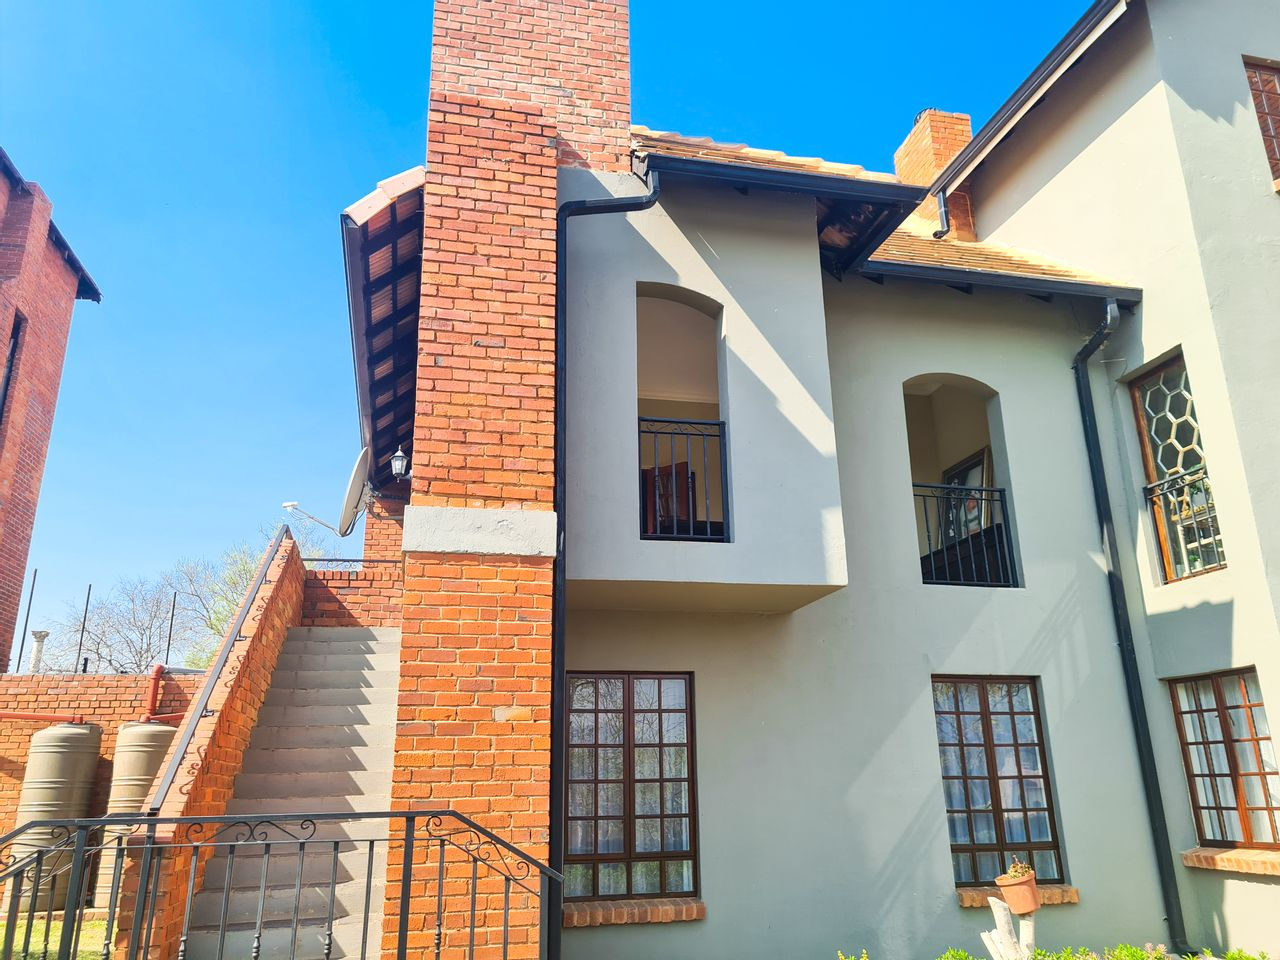 3 Bedroom Apartment For Sale in Ifafi